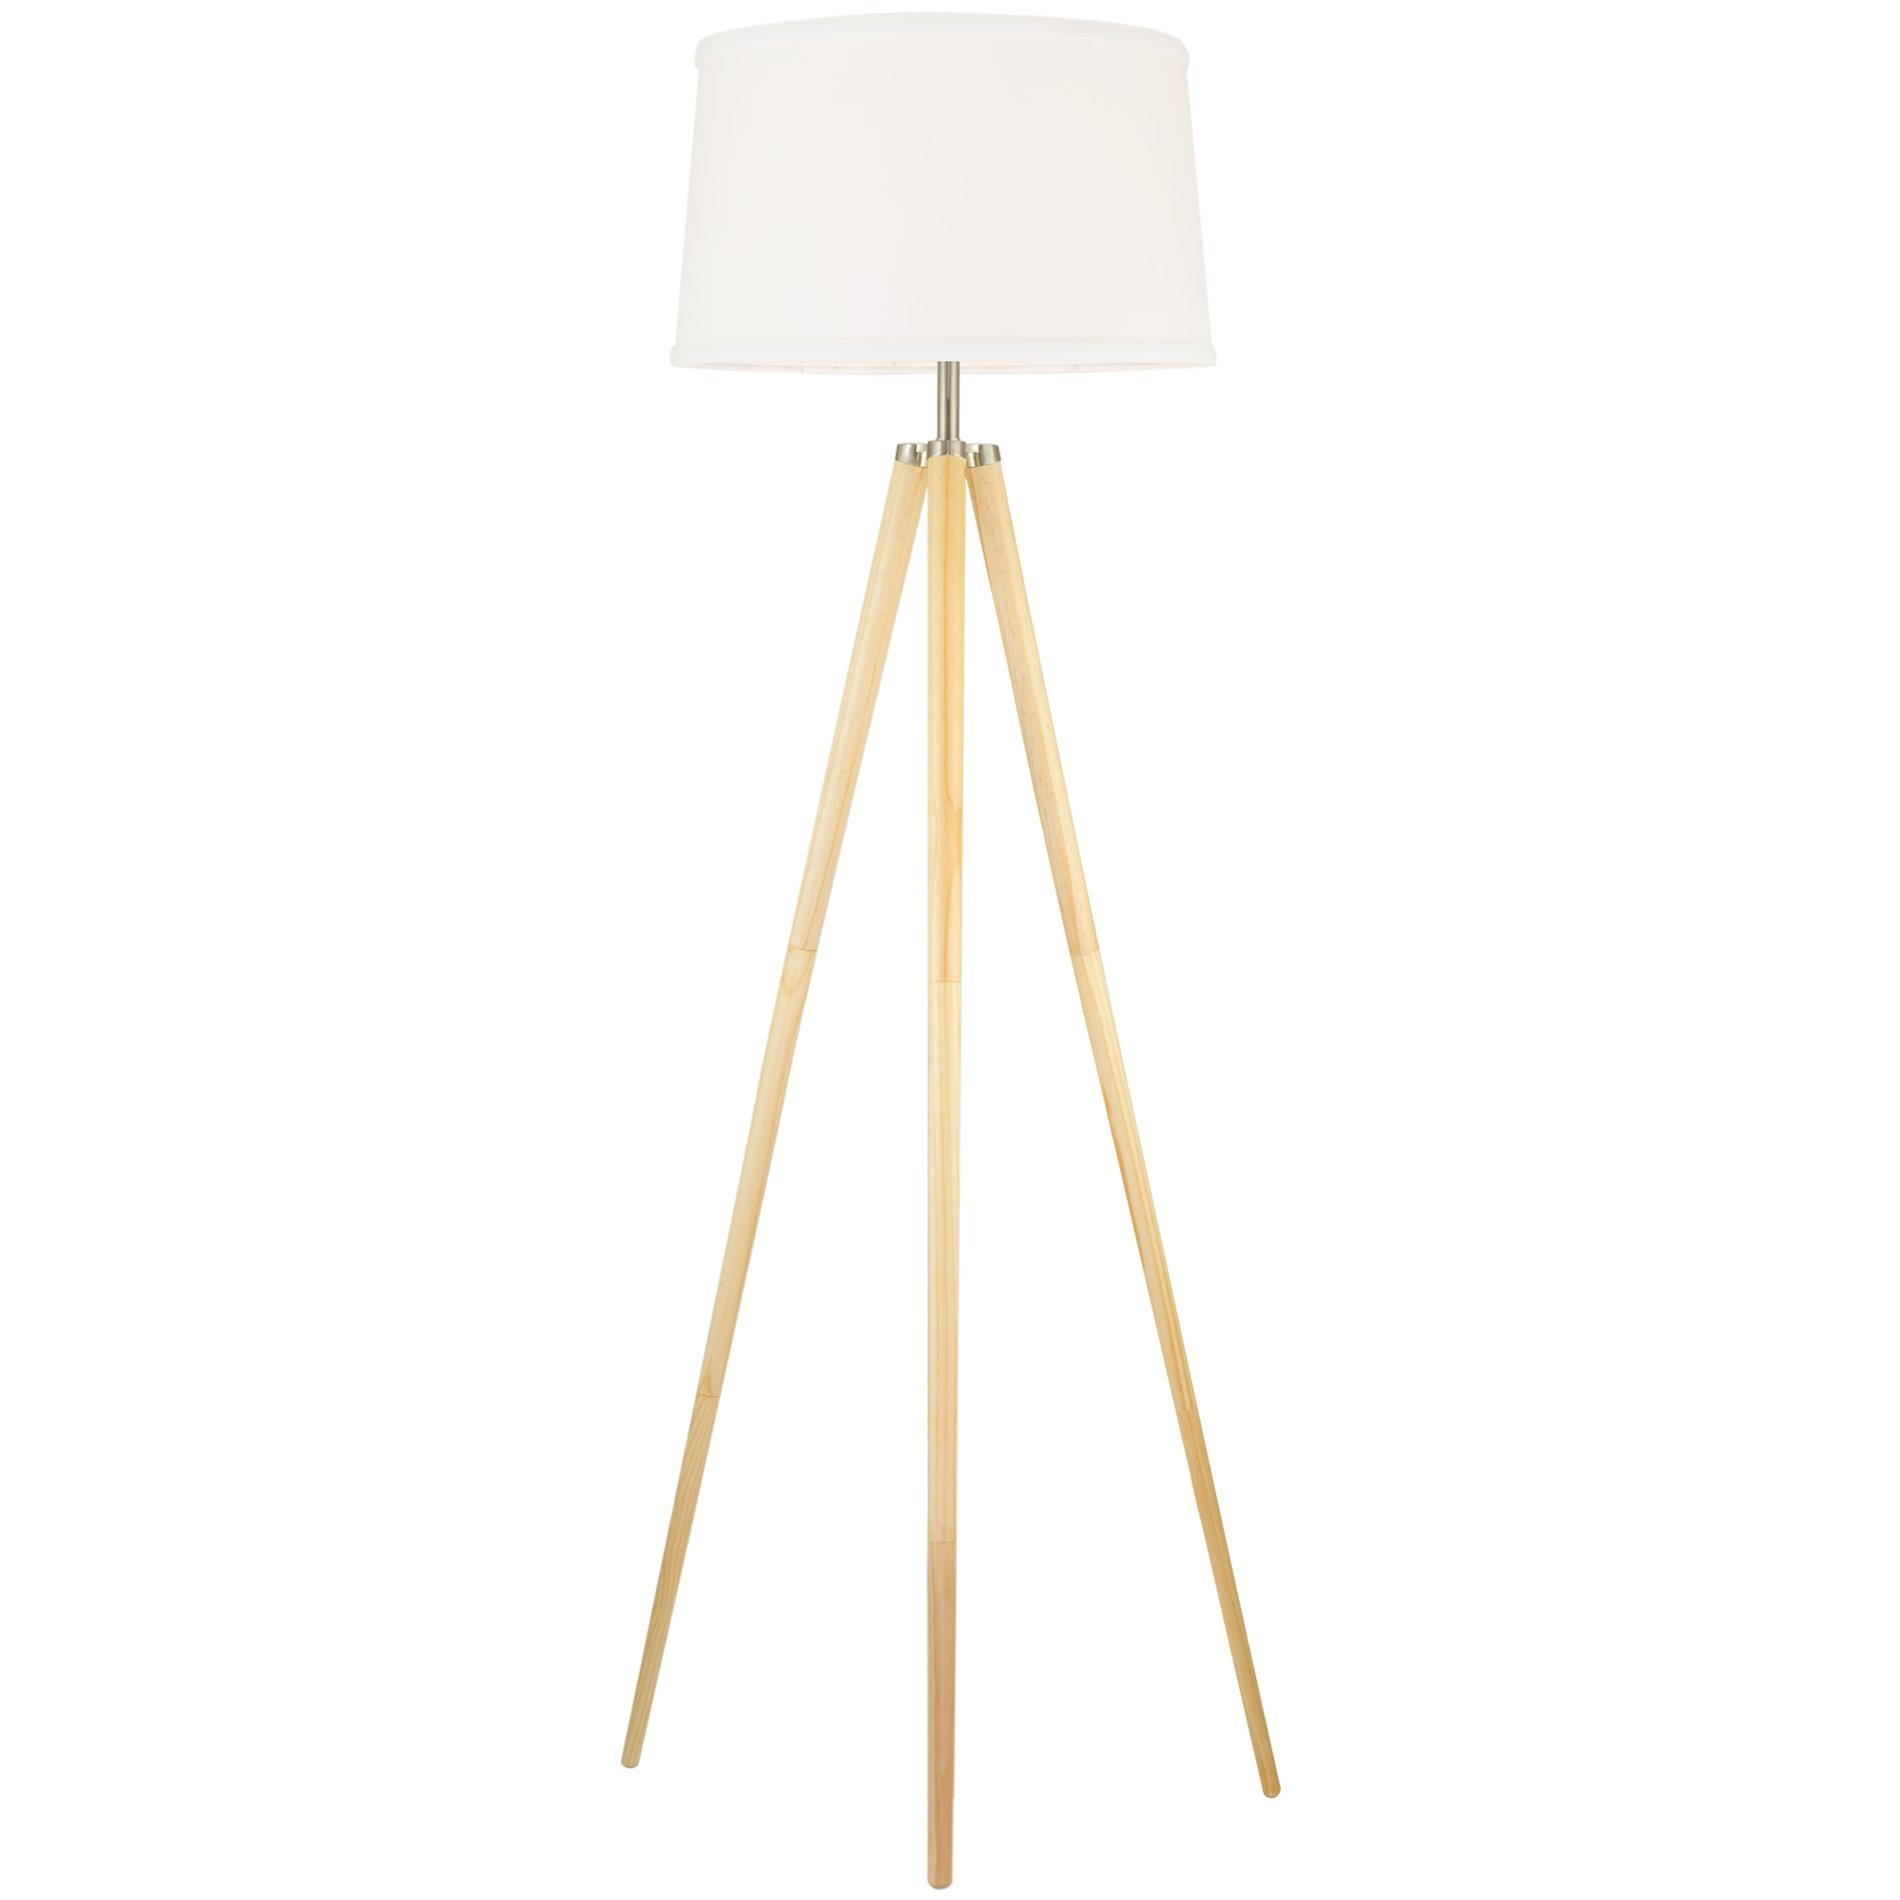 Revel Grace 60.5'' Contemporary Wooden Tripod LED Floor Lamp + 10.5W Bulb (Energy Efficient/Eco-Friendly), White Shade